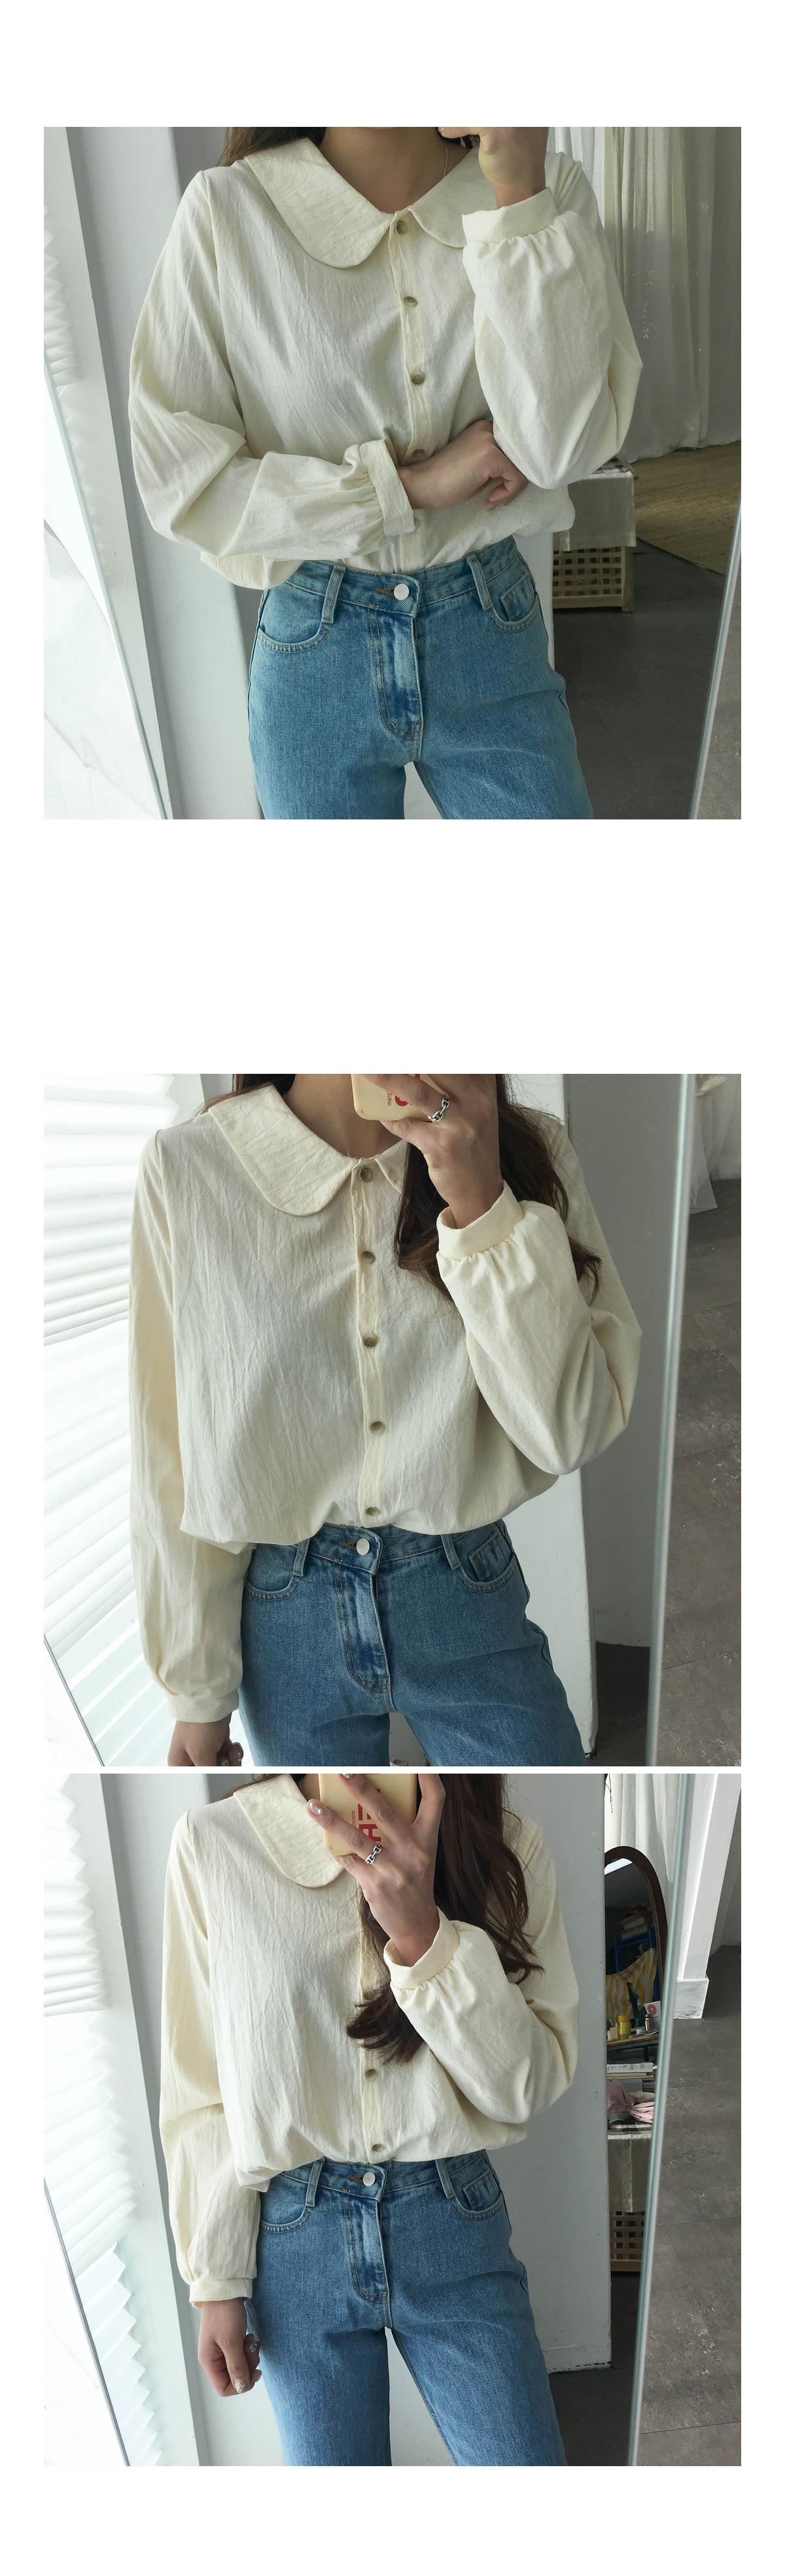 Carapins blouse